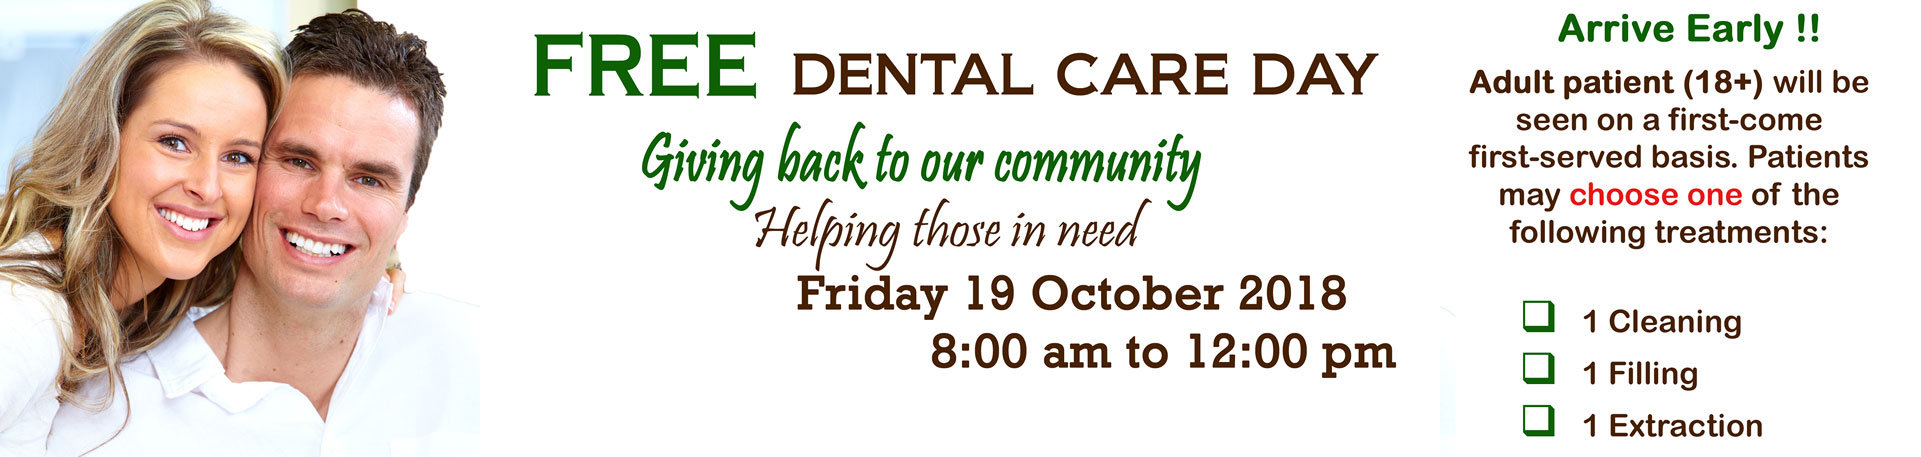 Free Dental Care Day by East York Dental